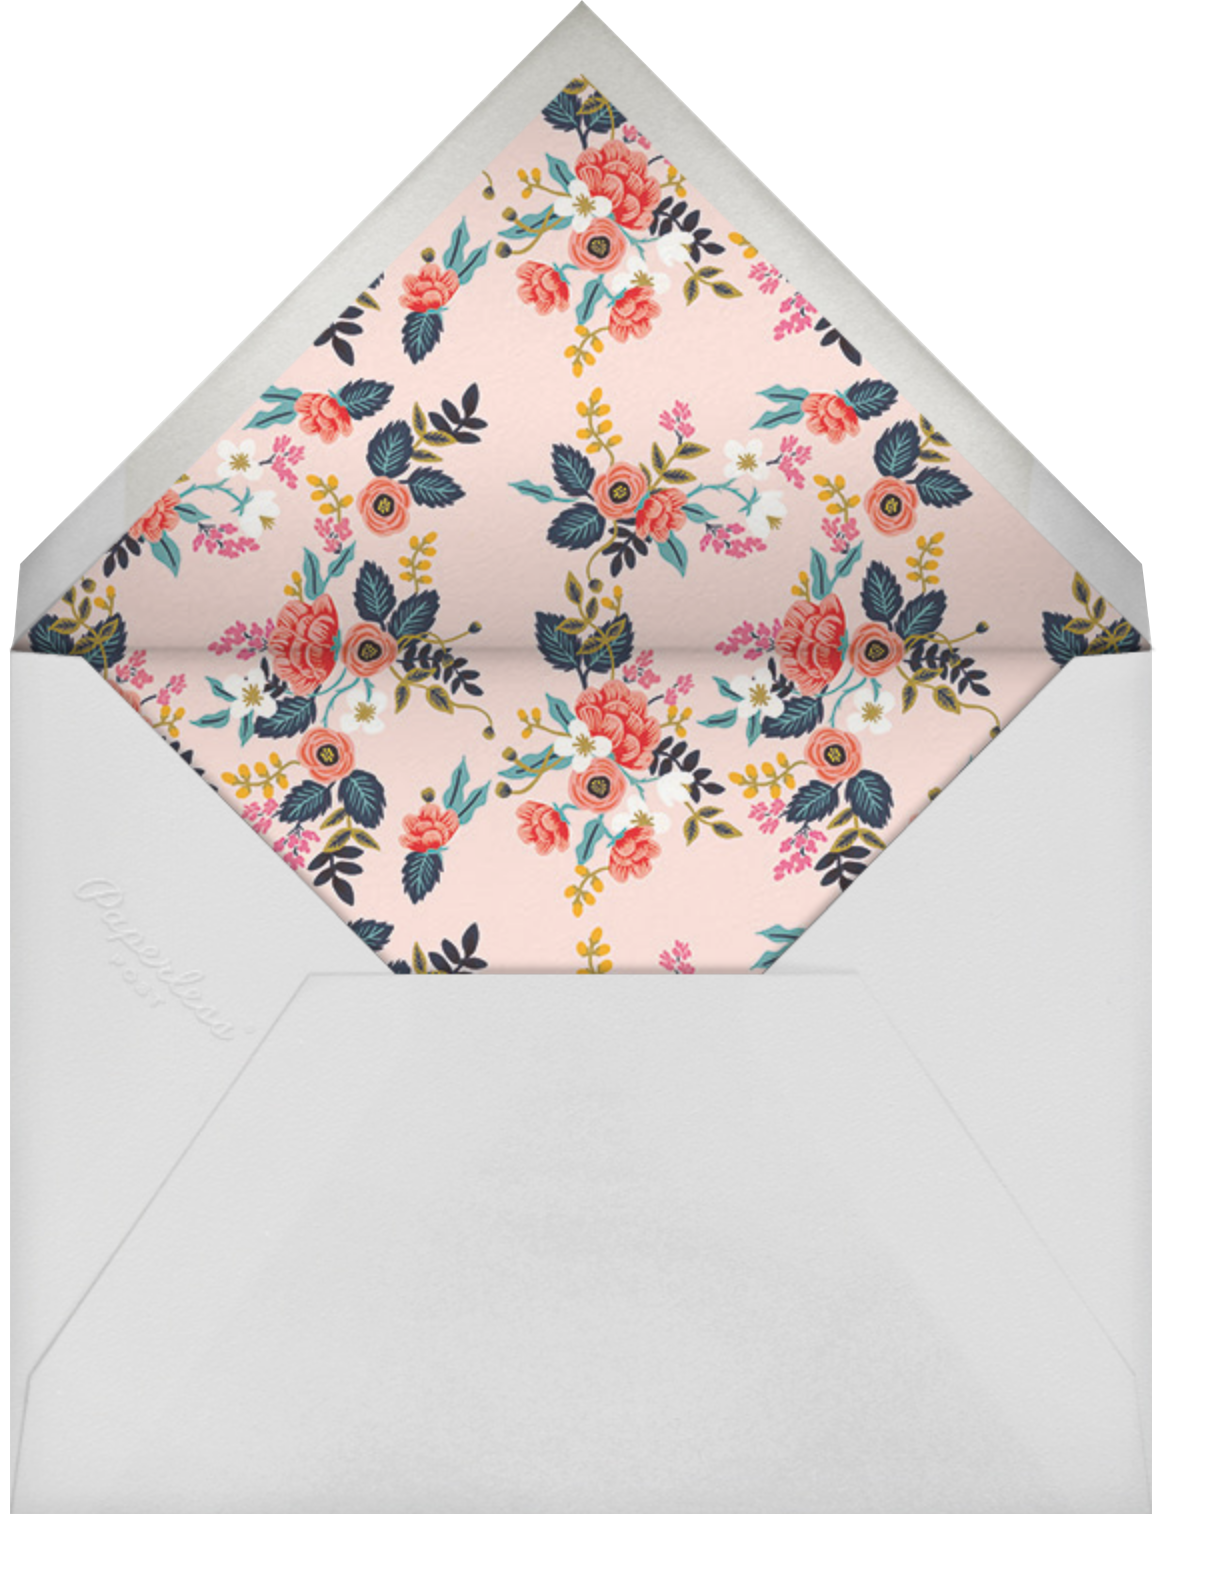 Birch Monarch Suite (Thank You) - Rifle Paper Co. - General - envelope back